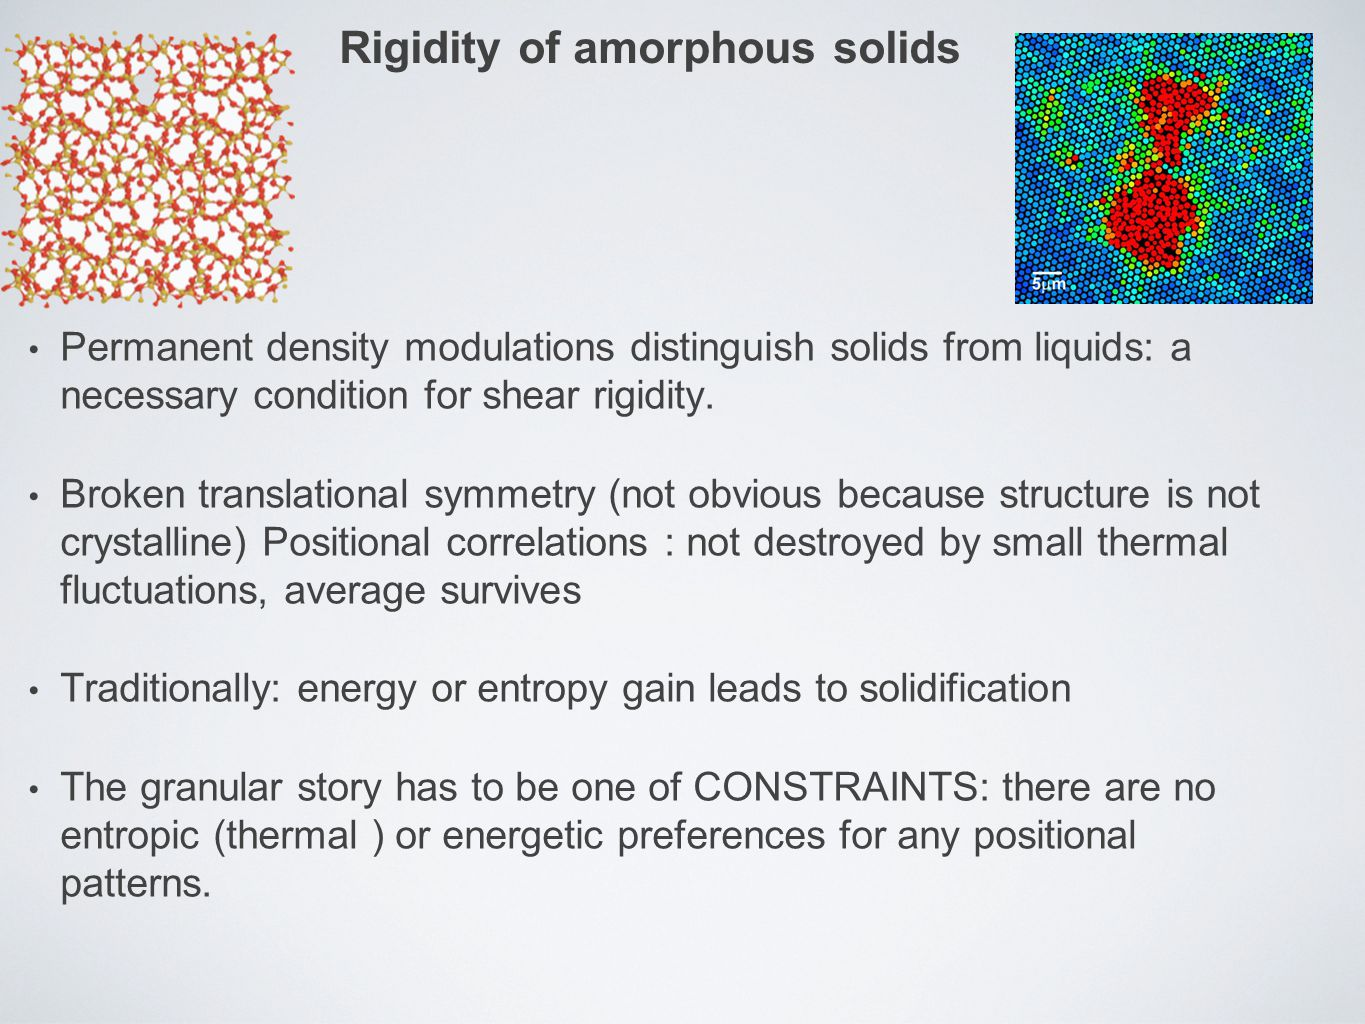 Rigidity of amorphous solids